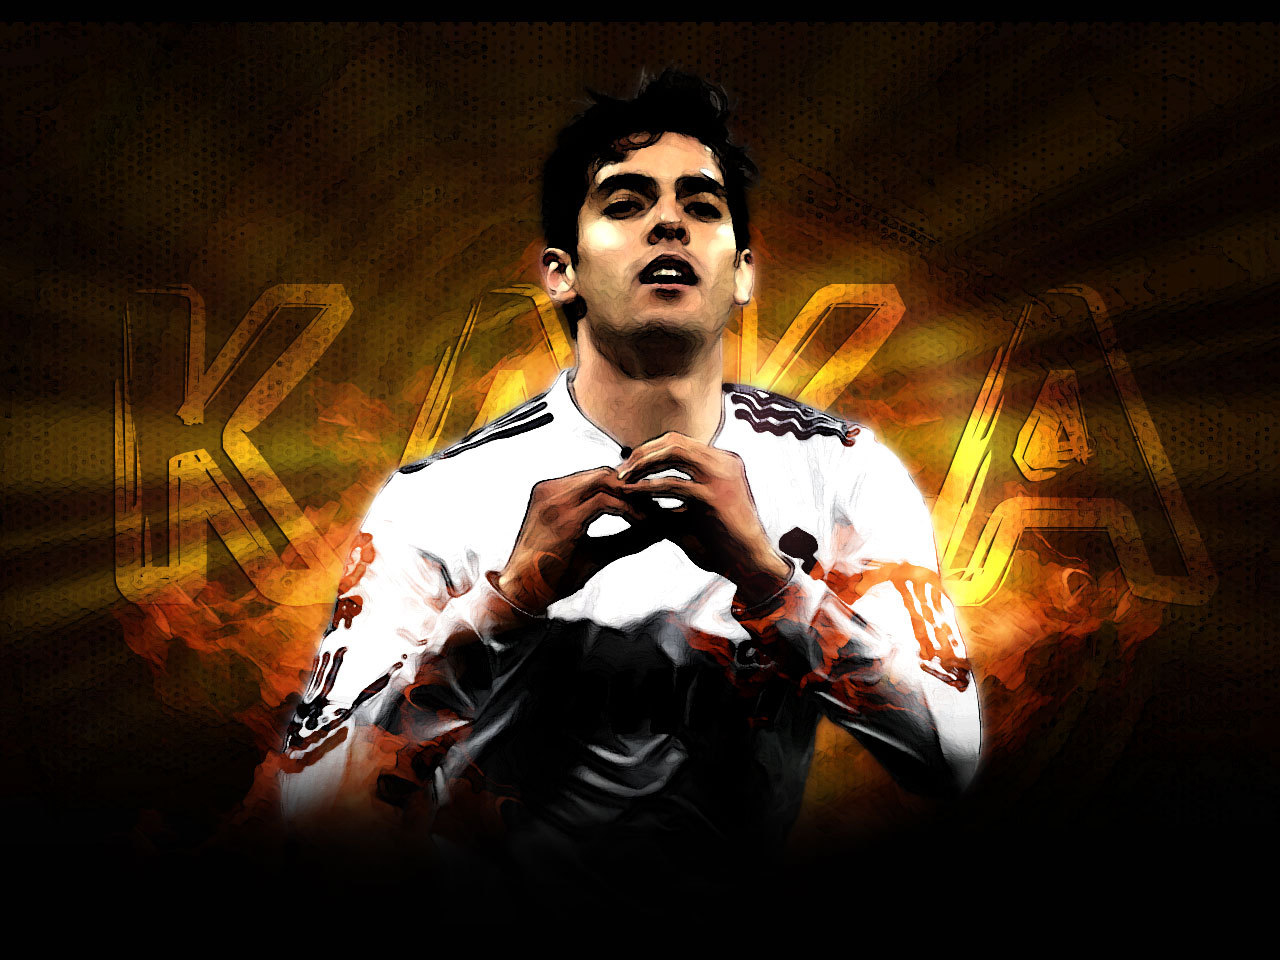 Ricardo Kaka Wallpapers Hd Kaka 2013 Hd Wallpapers Wallpapers